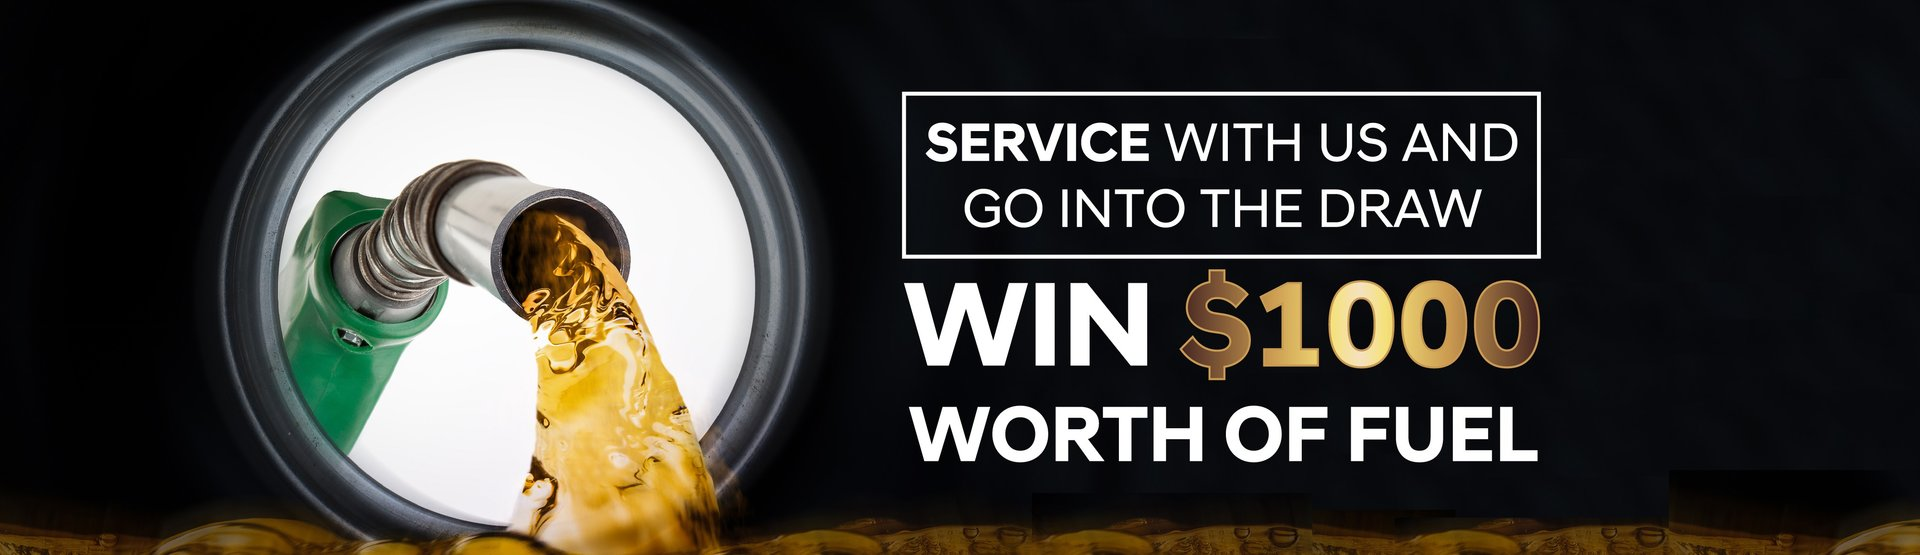 Win $1,000 Worth of Fuel with Morley City Service